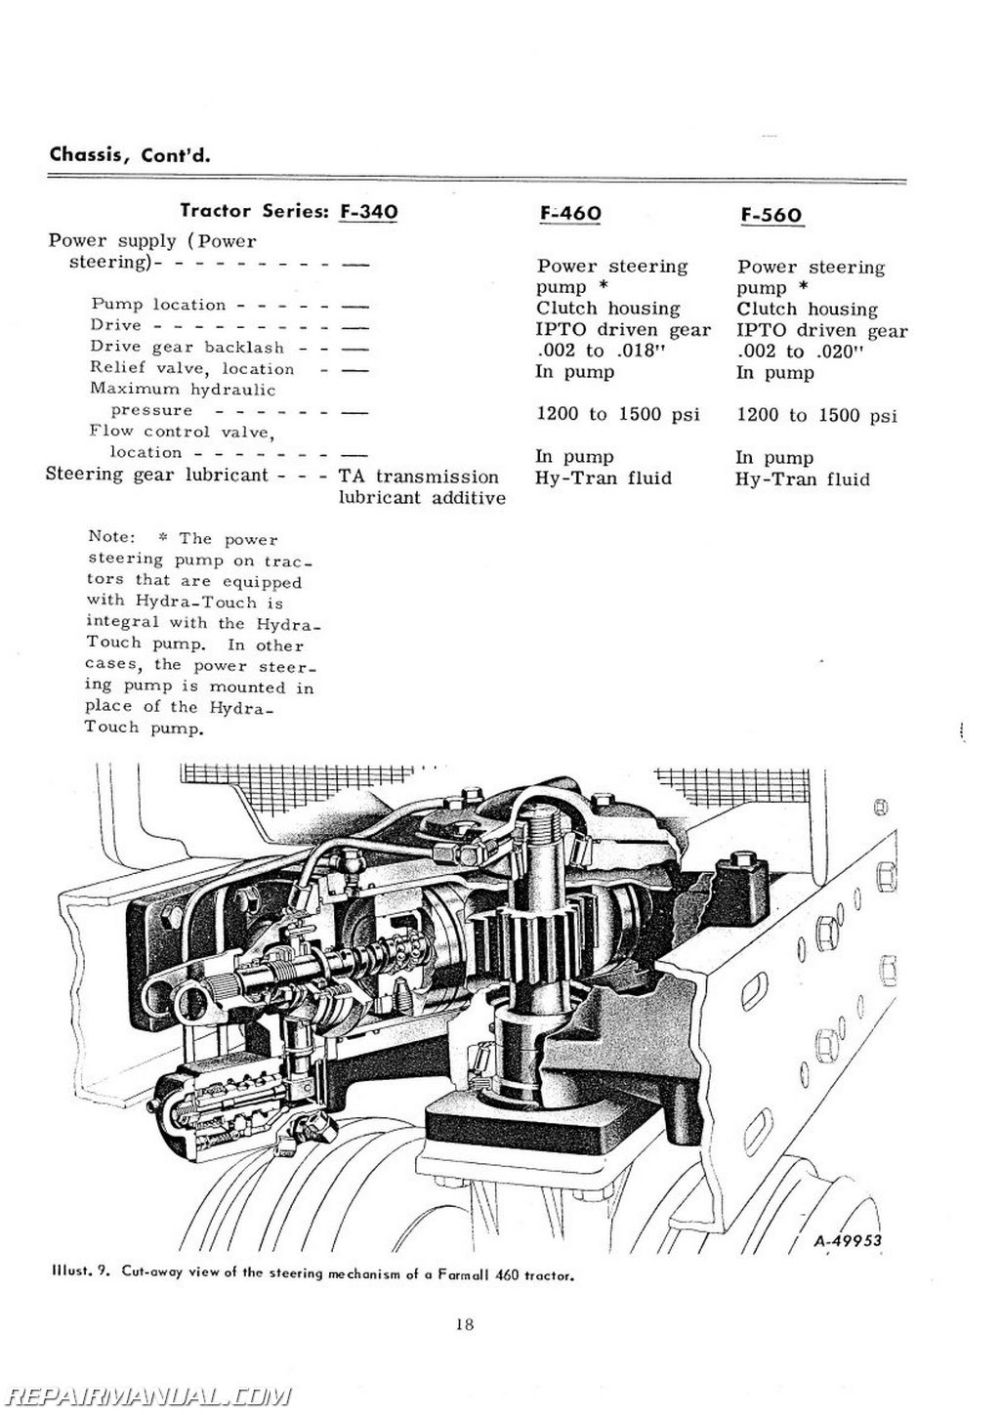 medium resolution of farmall 460 transmission diagram schematics wiring diagrams u2022 rh parntesis co ih 574 ih 1206